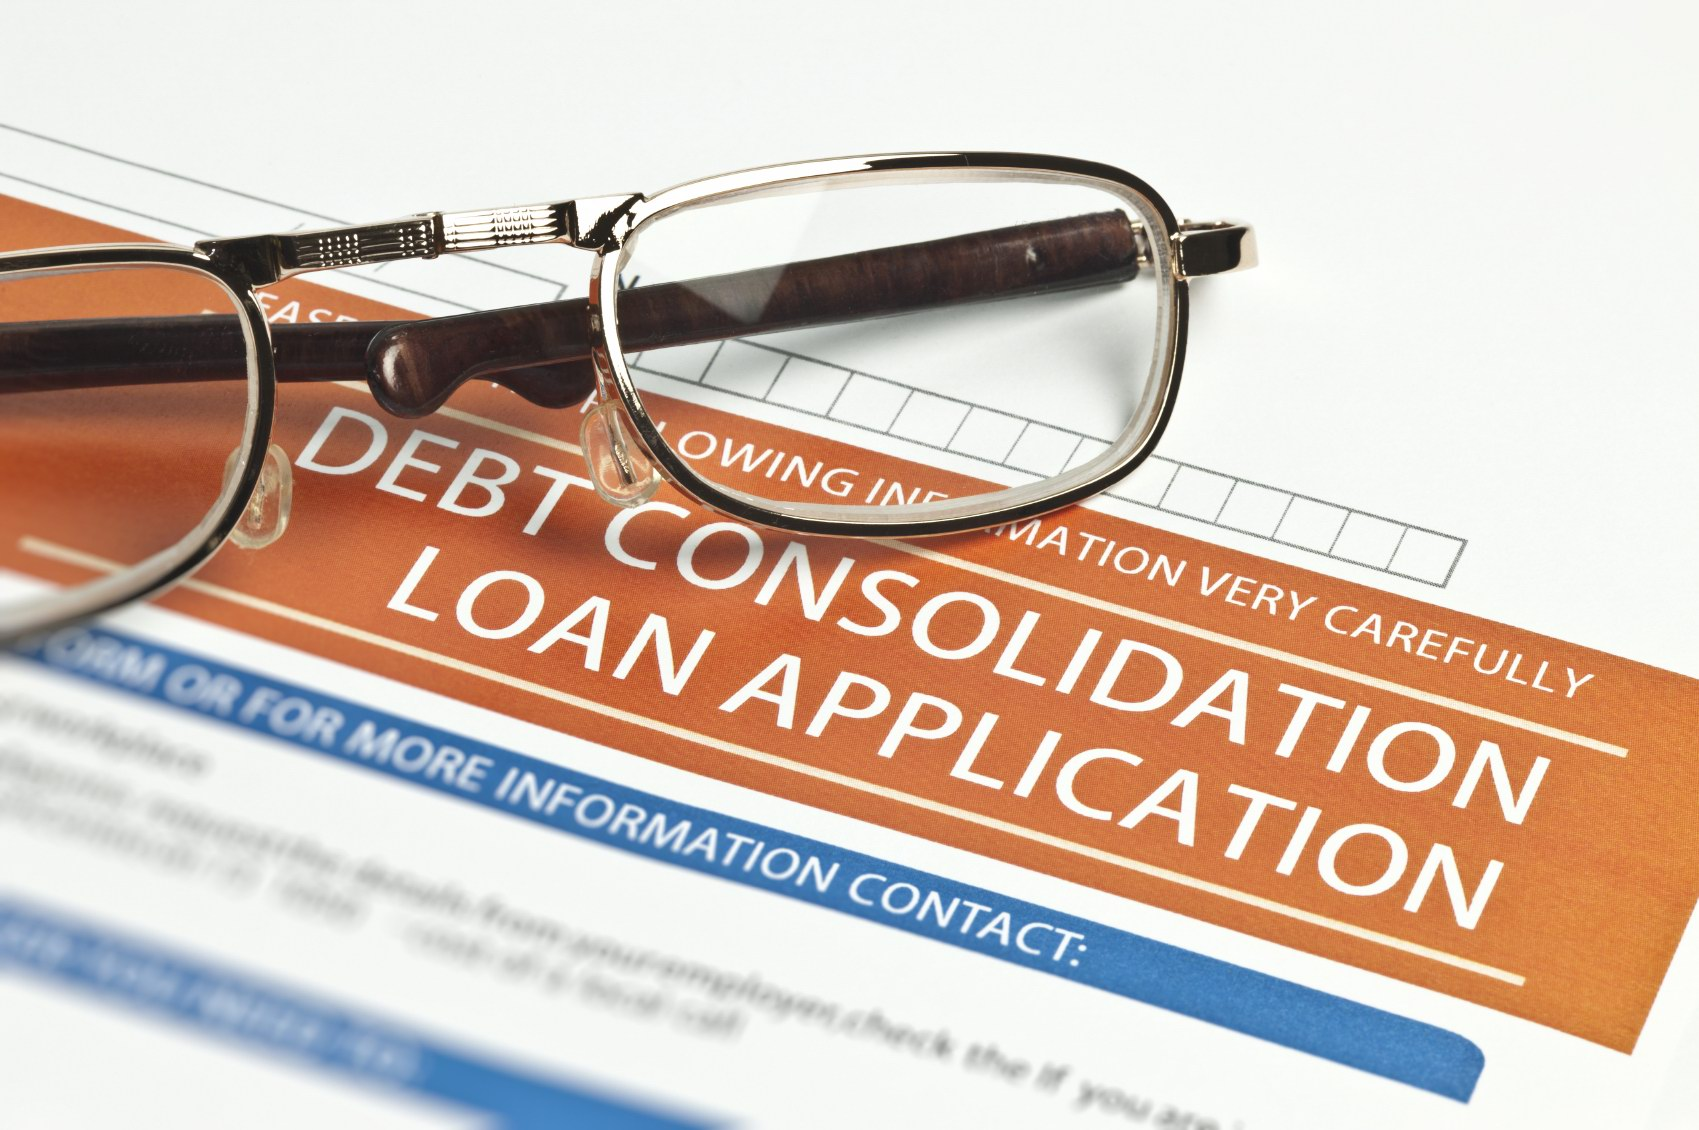 Common Traps Of Debt Consolidation And Ways To Avoid Them. Steel Rolling Platform Ladders. Bachelor Of Science In Business Administration Abbreviation. Best Way To Rebuild Your Credit. Personal Injury Lawyer Lafayette La. Project Management Course Online Free. American Cancer Research Center Donations. International Phone Call From Us. Android Developer Platform Desktop Pcs Deals